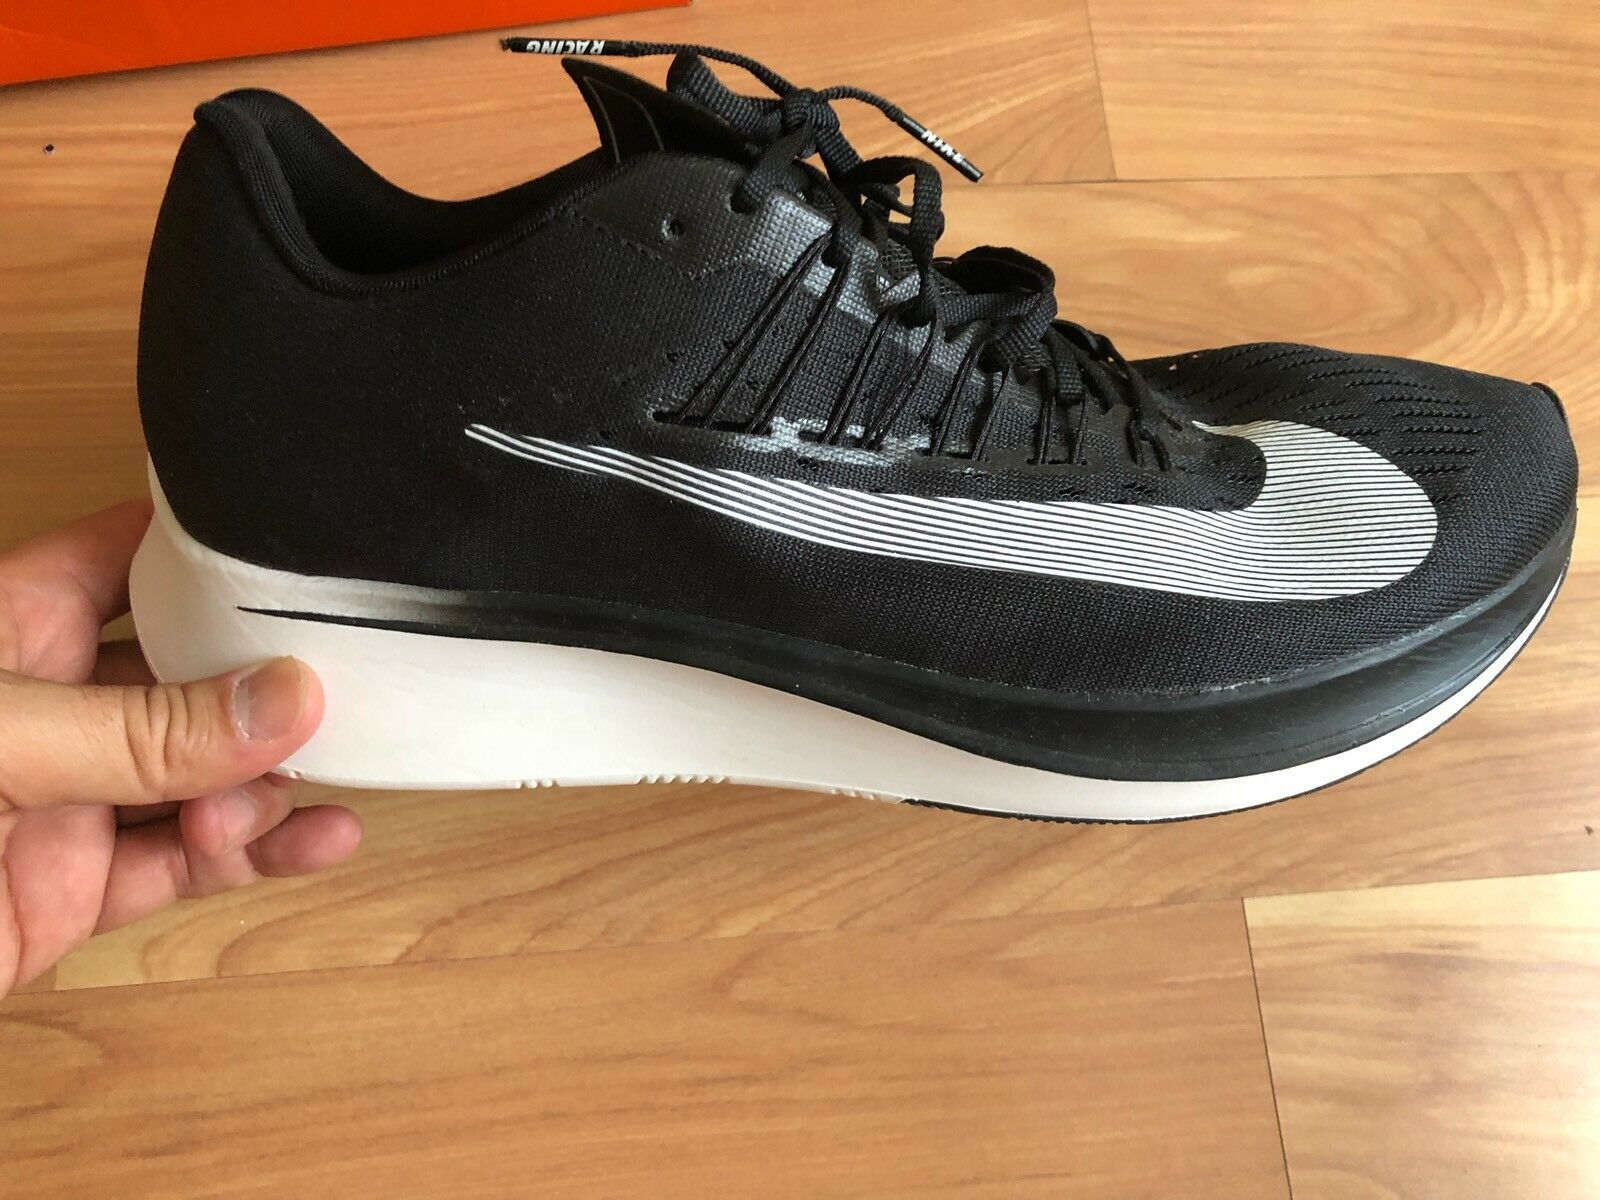 New Nike Air Zoom Fly Black Racer Running shoes 880848-010 Size 12